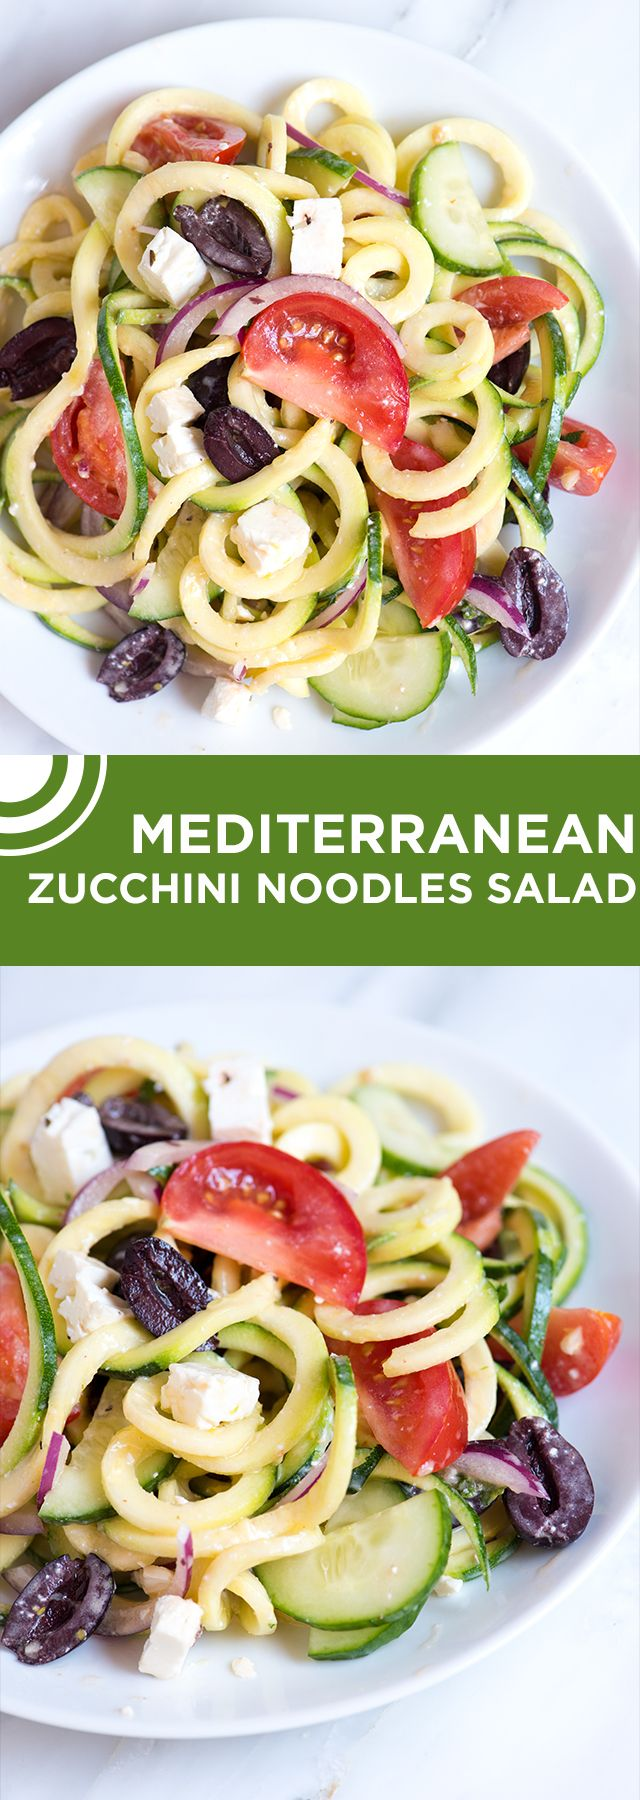 Make this guilt-free zucchini noodles salad in 15 minutes! The yogurt-based dressing has just the right amount of kick from garlic, feta cheese, lemon and Sriracha hot sauce. The salad is perfect to eat straight away or made in advance. From inspiredtaste.net | @inspiredtaste